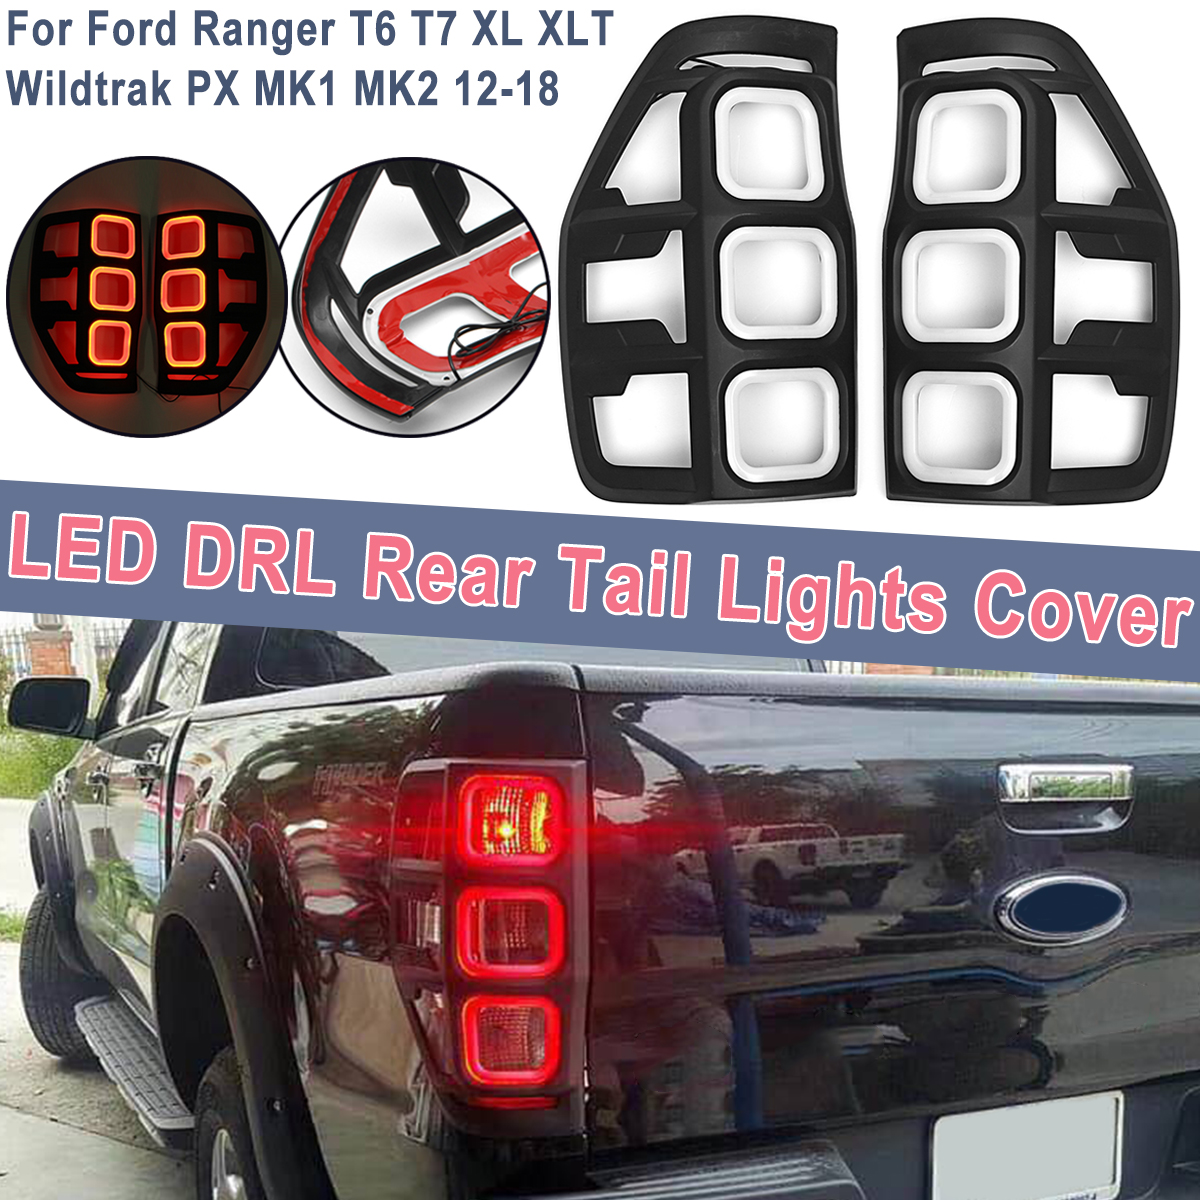 2Pcs Real Tail Light LED DRL Rear Tail Light Lamp Cover For Ford Ranger T6 T7 XL XLT Wildtrak PX MK2 2012-18 Red Brake Lights for f150 raptor f 150 led tail light rear lights for ford 2008 2012 year smoke black sn